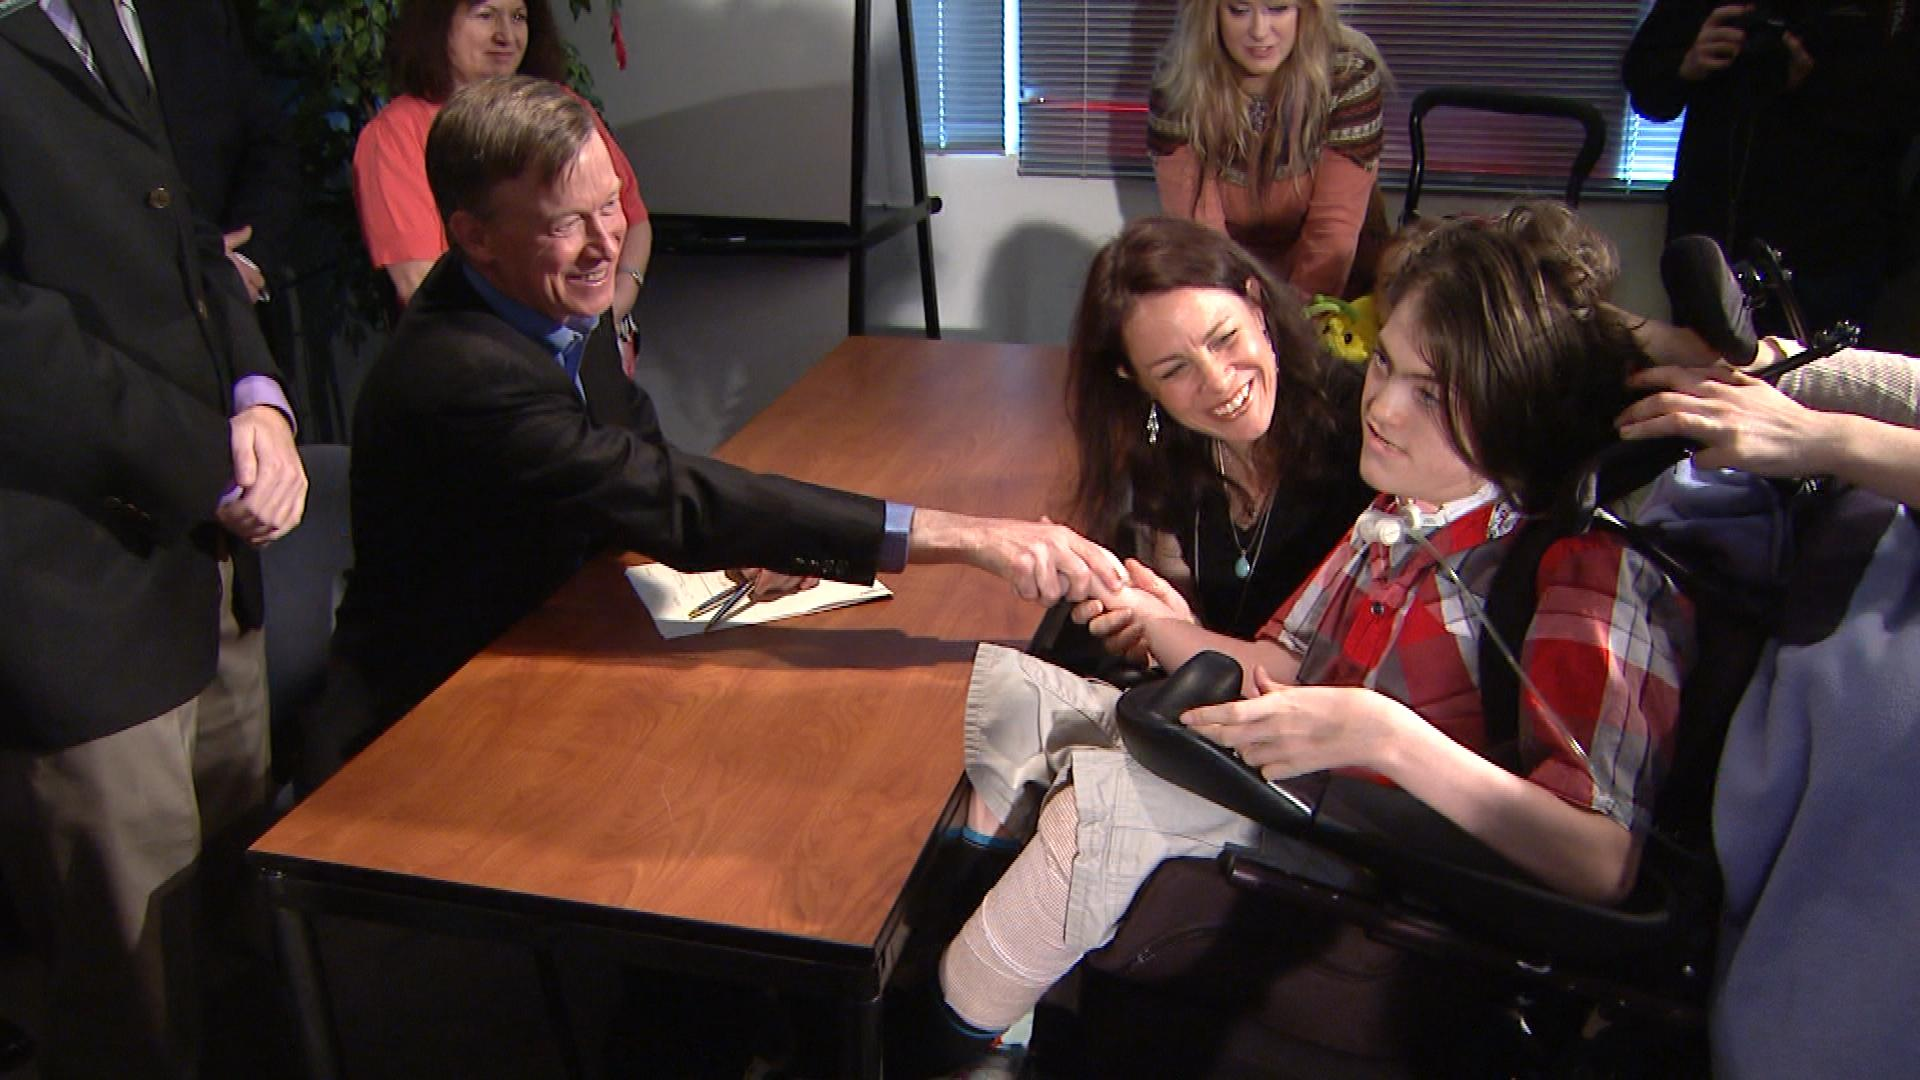 Gov. John Hickenlooper shakes Jack Splitt's hand after signing the bill into law (credit: CBS)